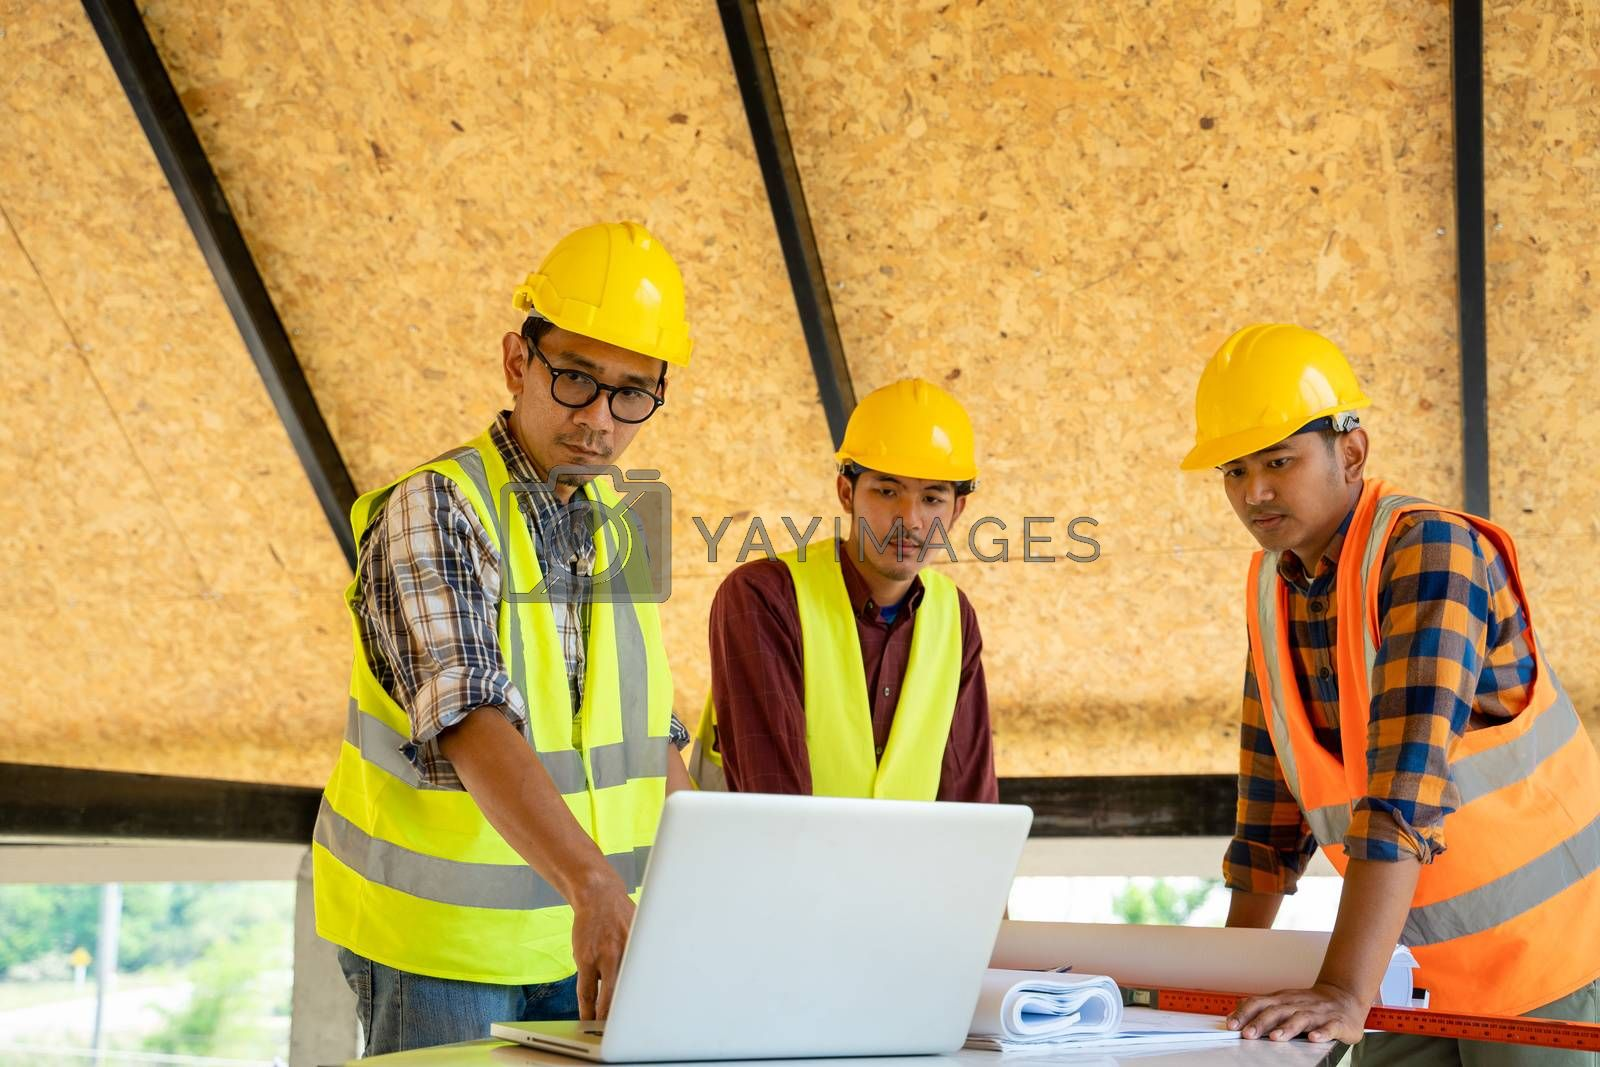 Industrial engineering team meeting and working at construction site.